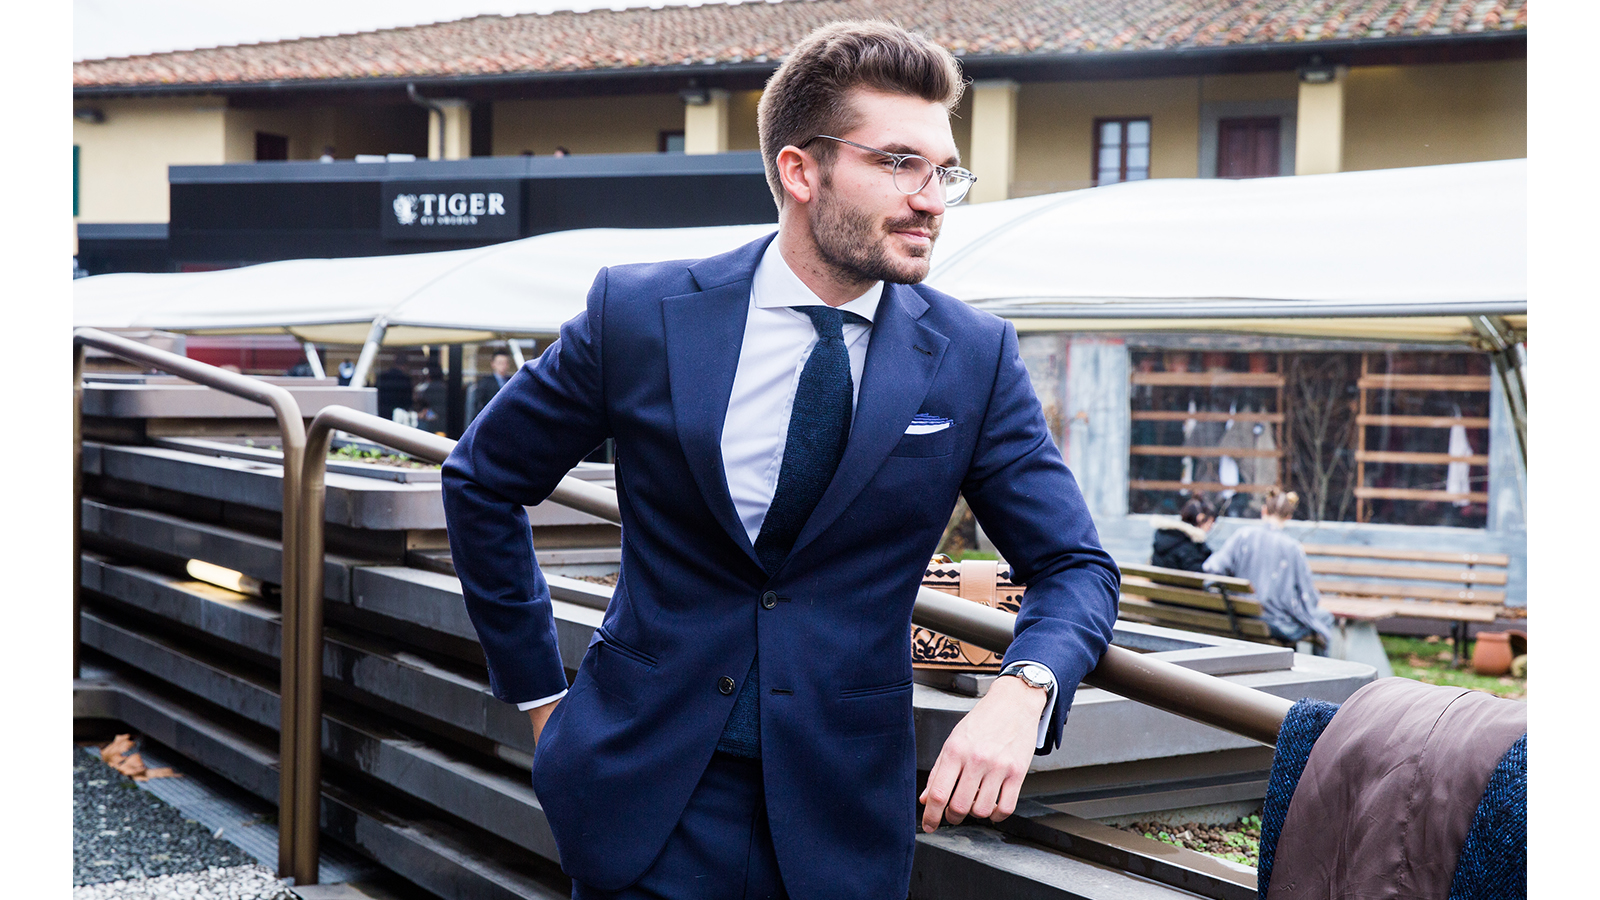 7 style tips for shorter men - visiting a tailor is always an option